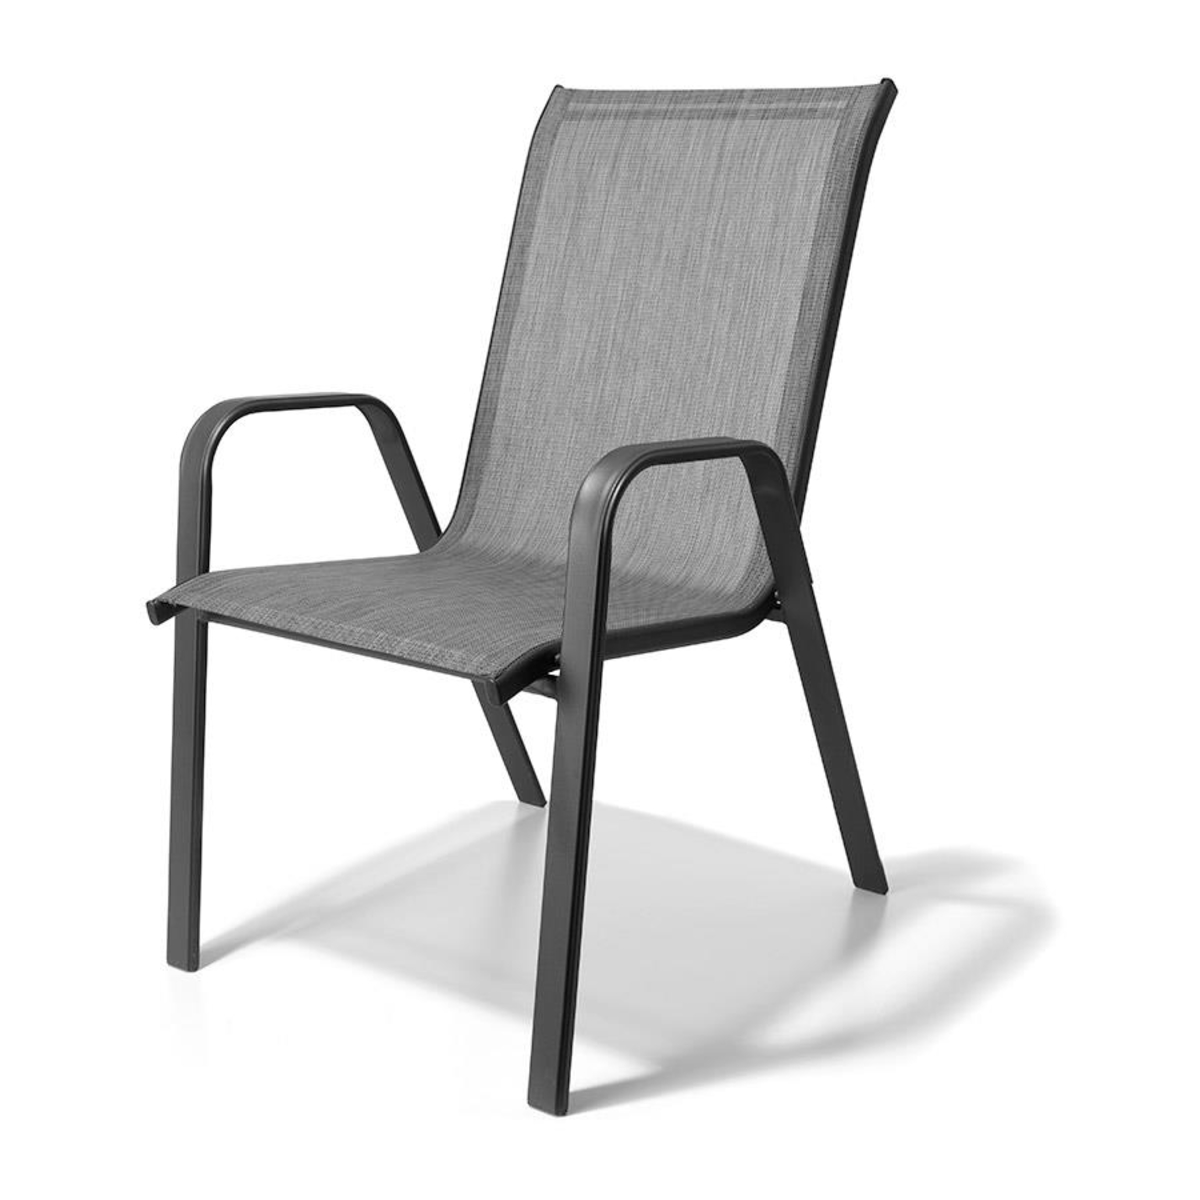 kmart patio chair